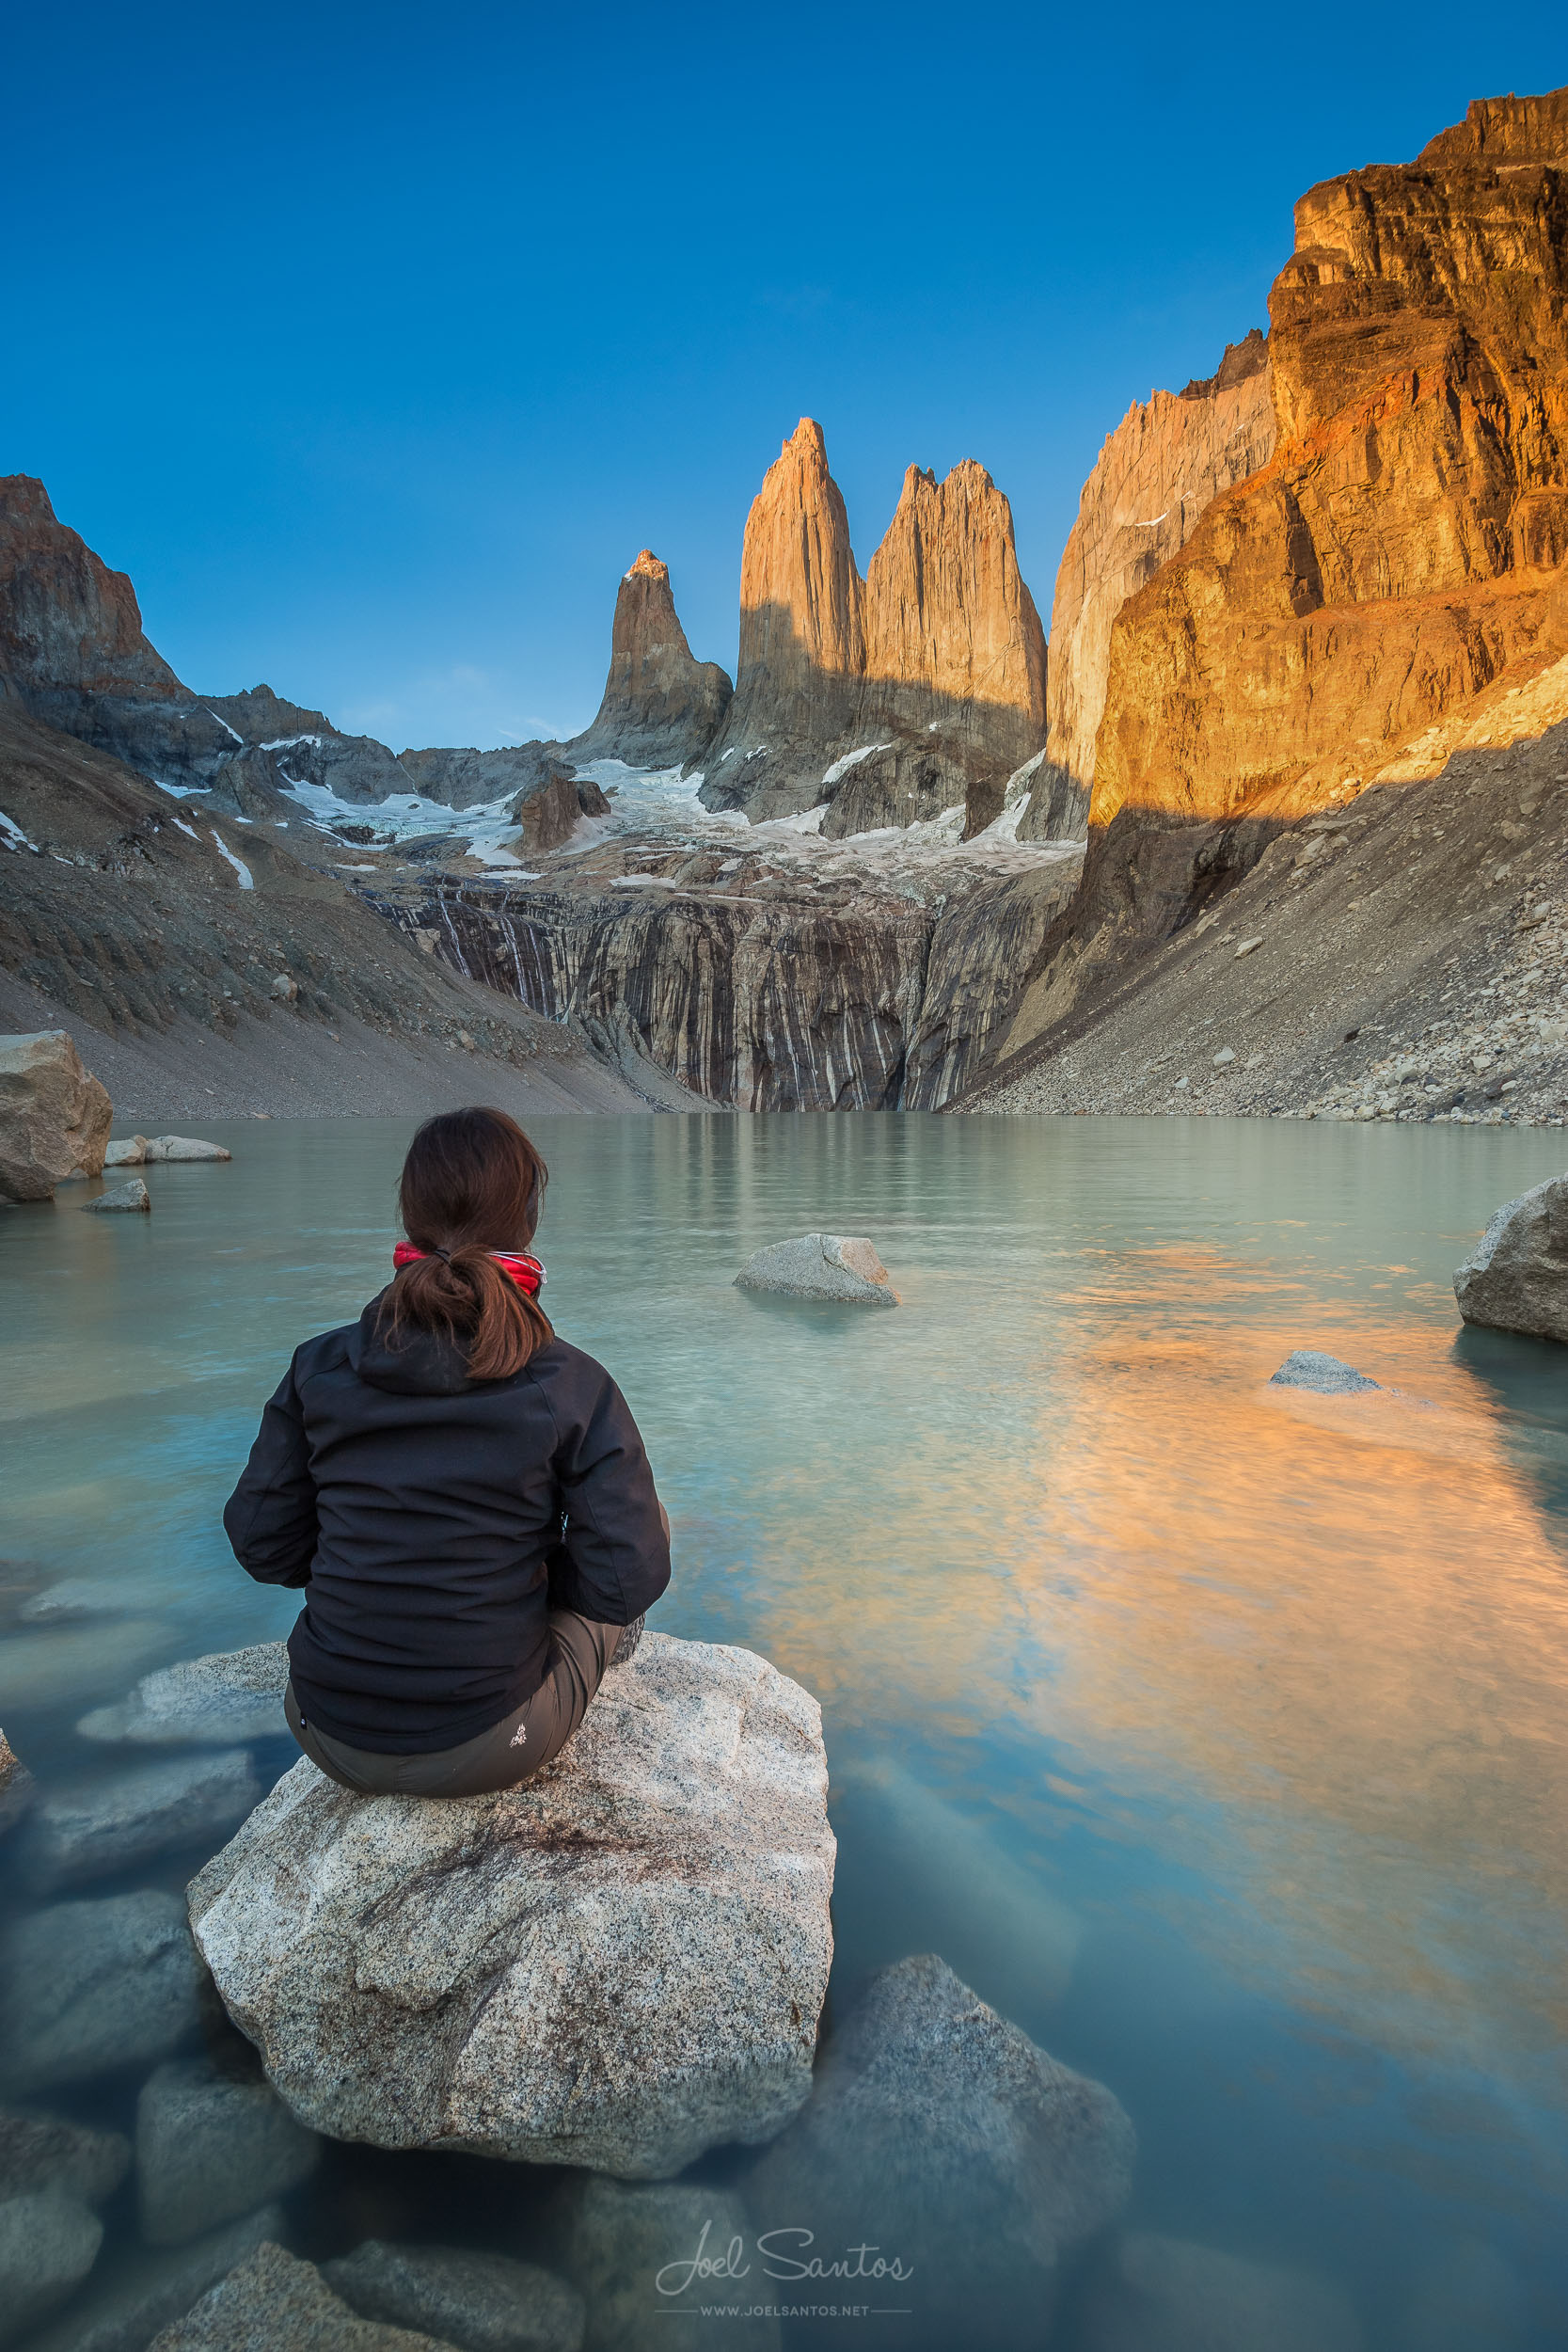 Torres del Paine, Southern Patagonian Ice Field, Patagonia, Chil